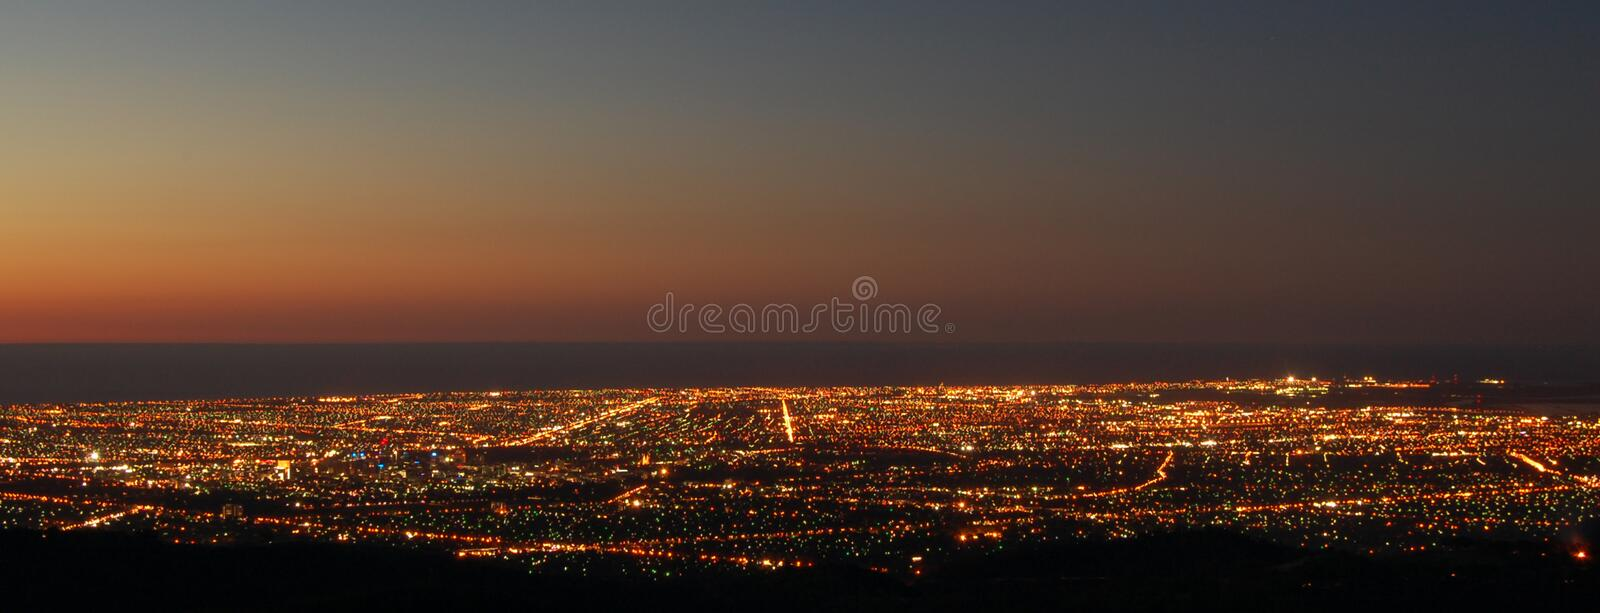 Download Sunset over City stock photo. Image of town, dark, sunset - 3589302